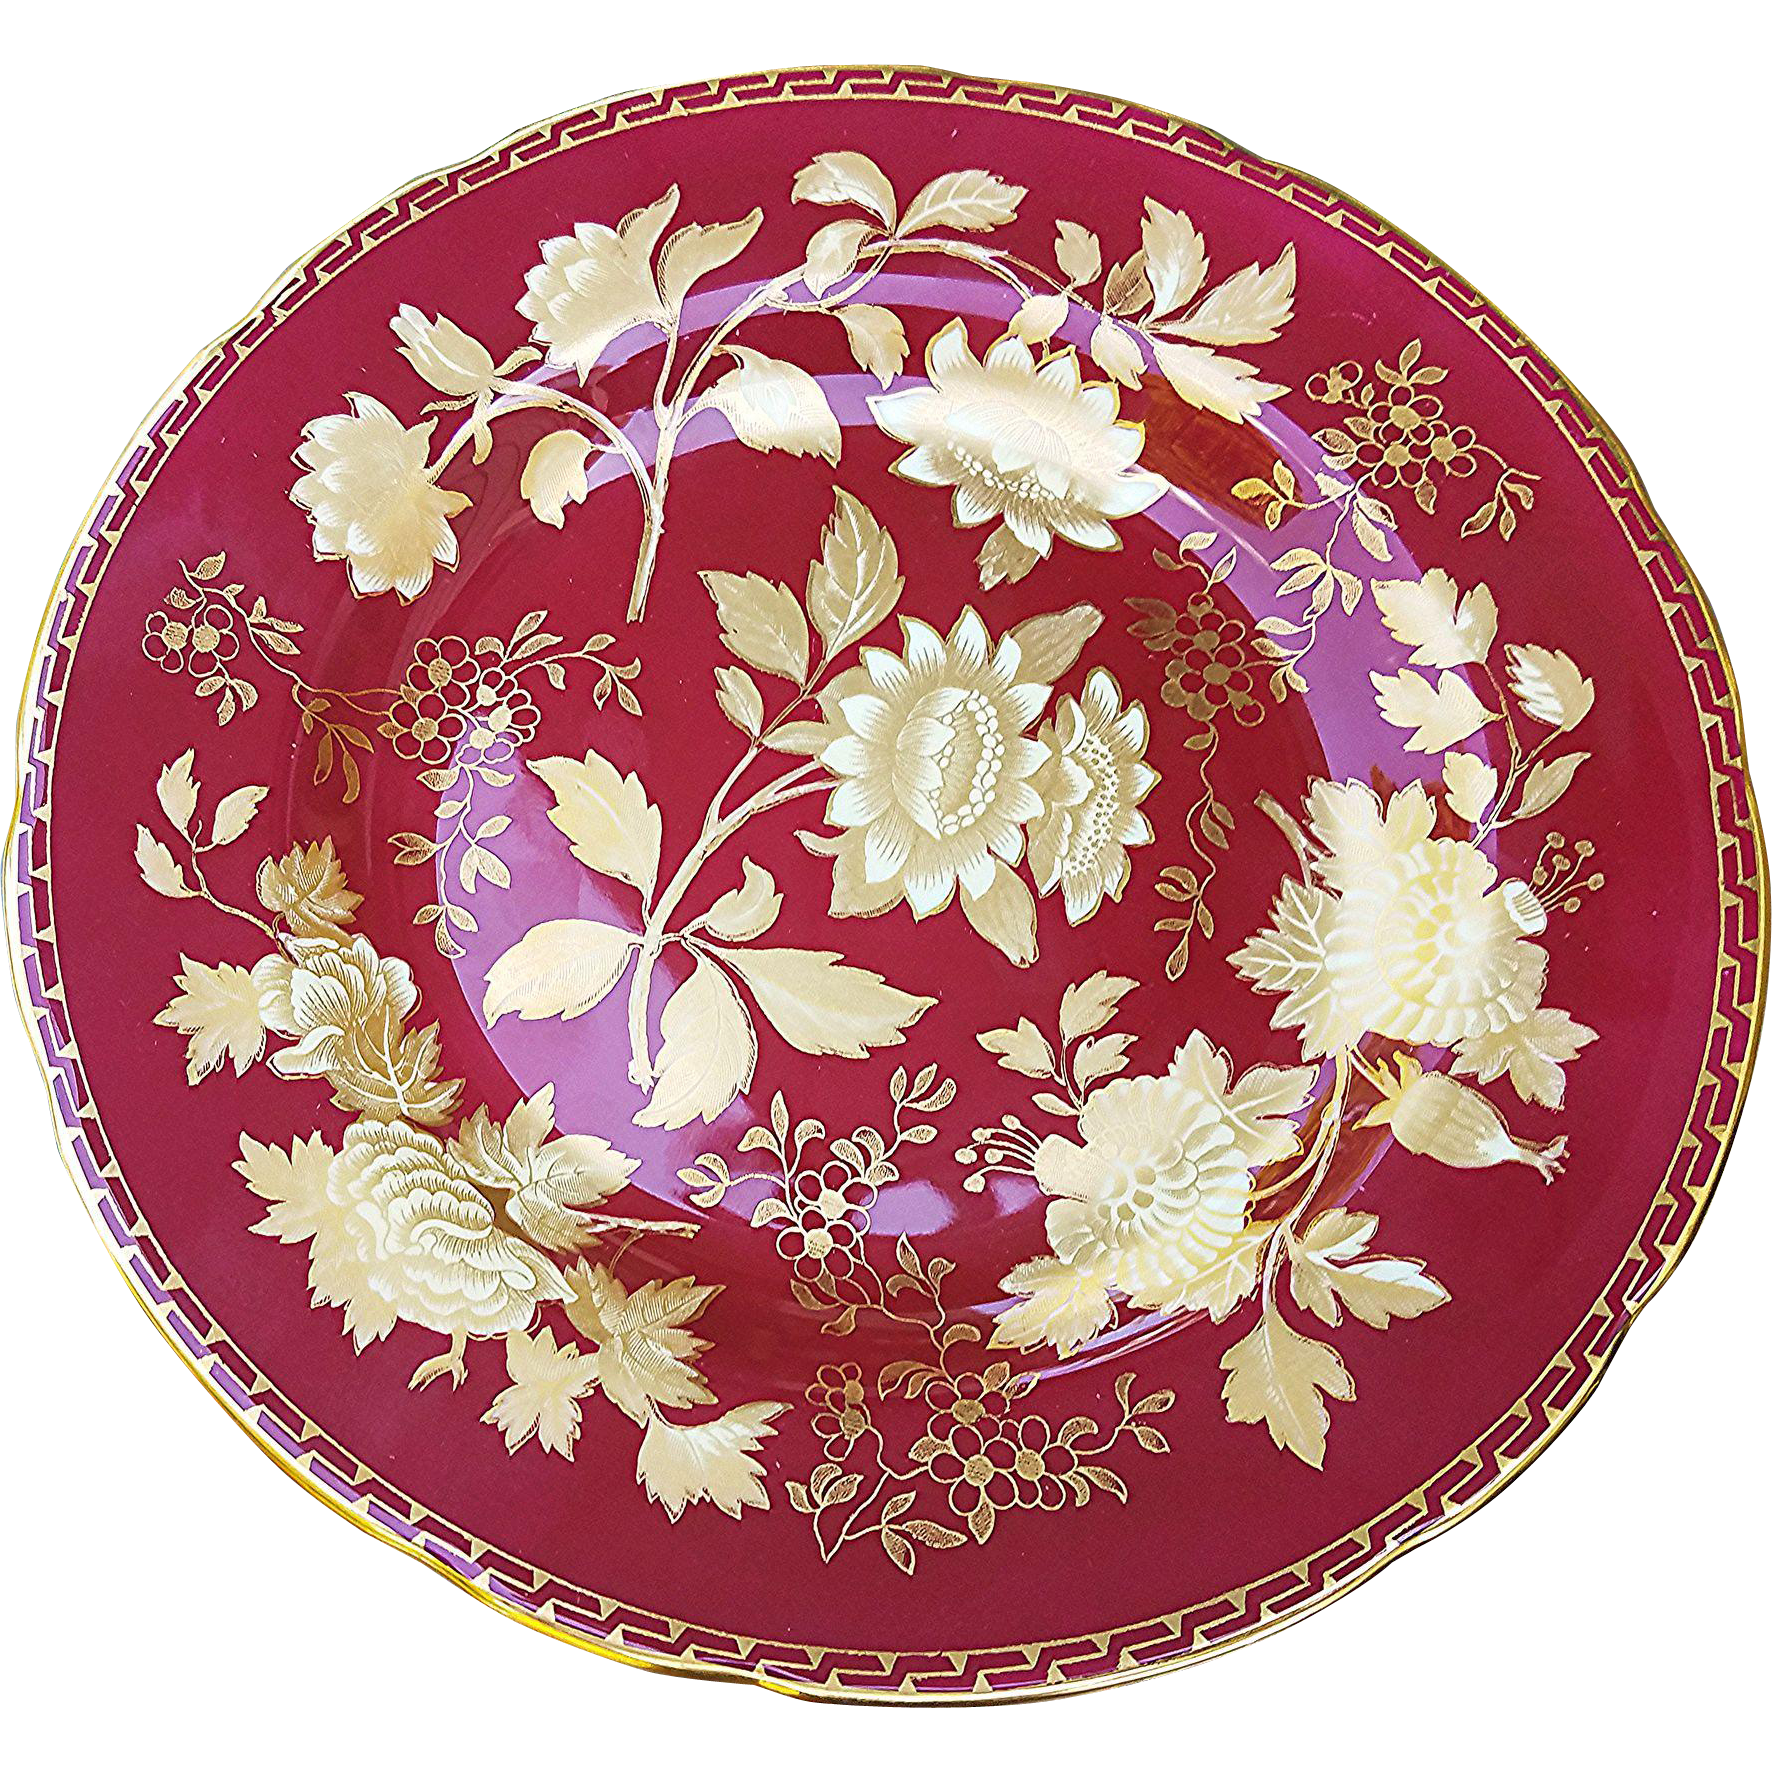 "Beautiful English Wedgwood 1930's Tonquin' Ruby Red 8-1/4"" Floral Plate"